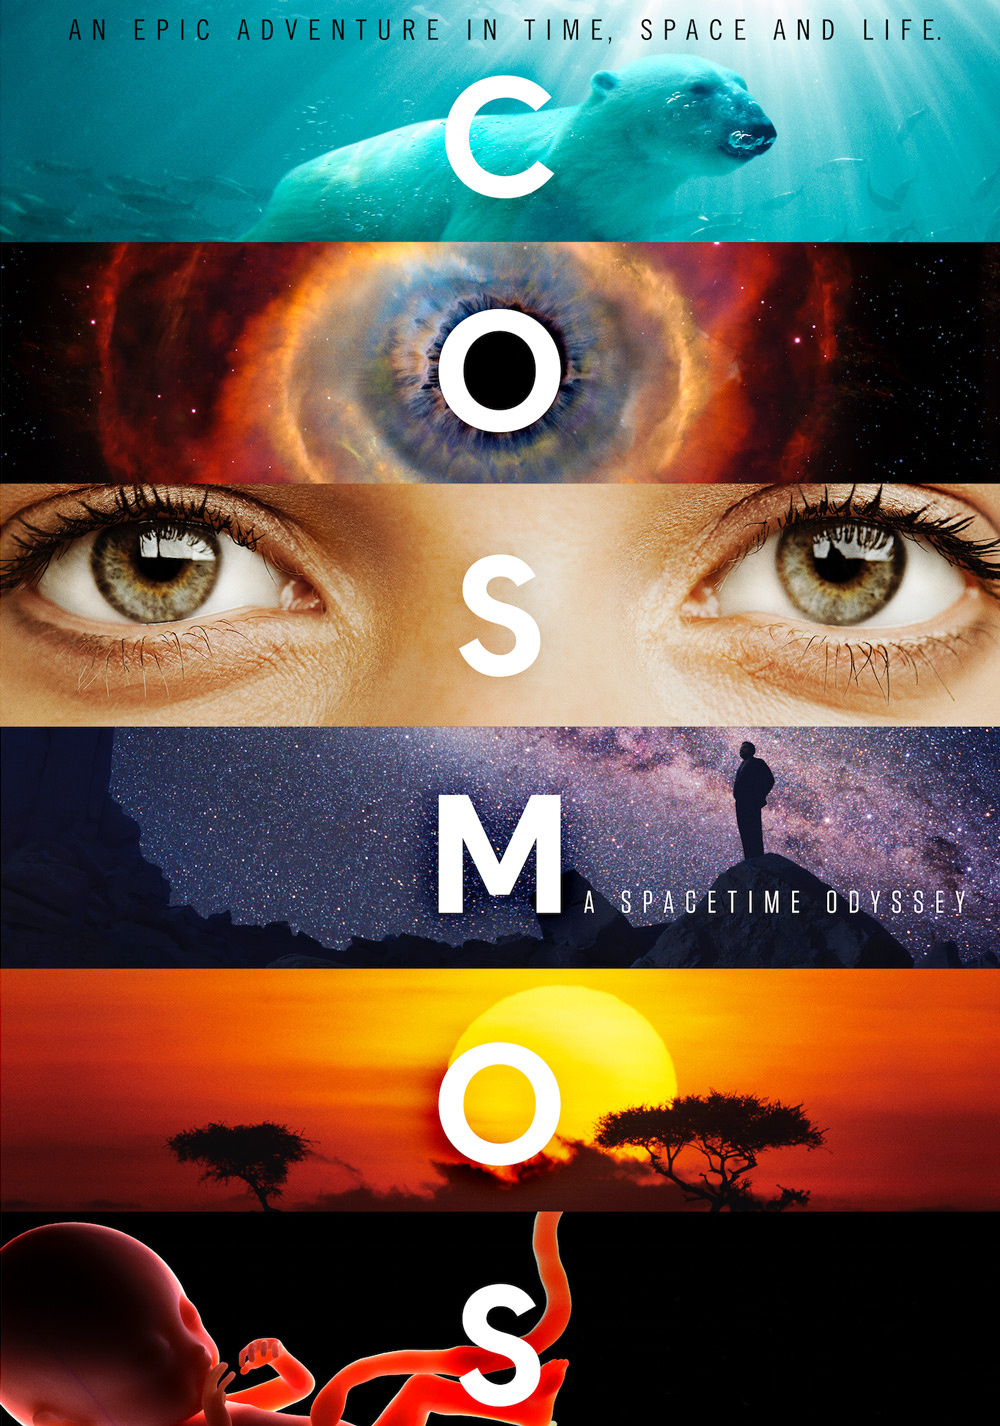 Cosmos: A Spacetime Odyssey Documentary | Love Daily Dose